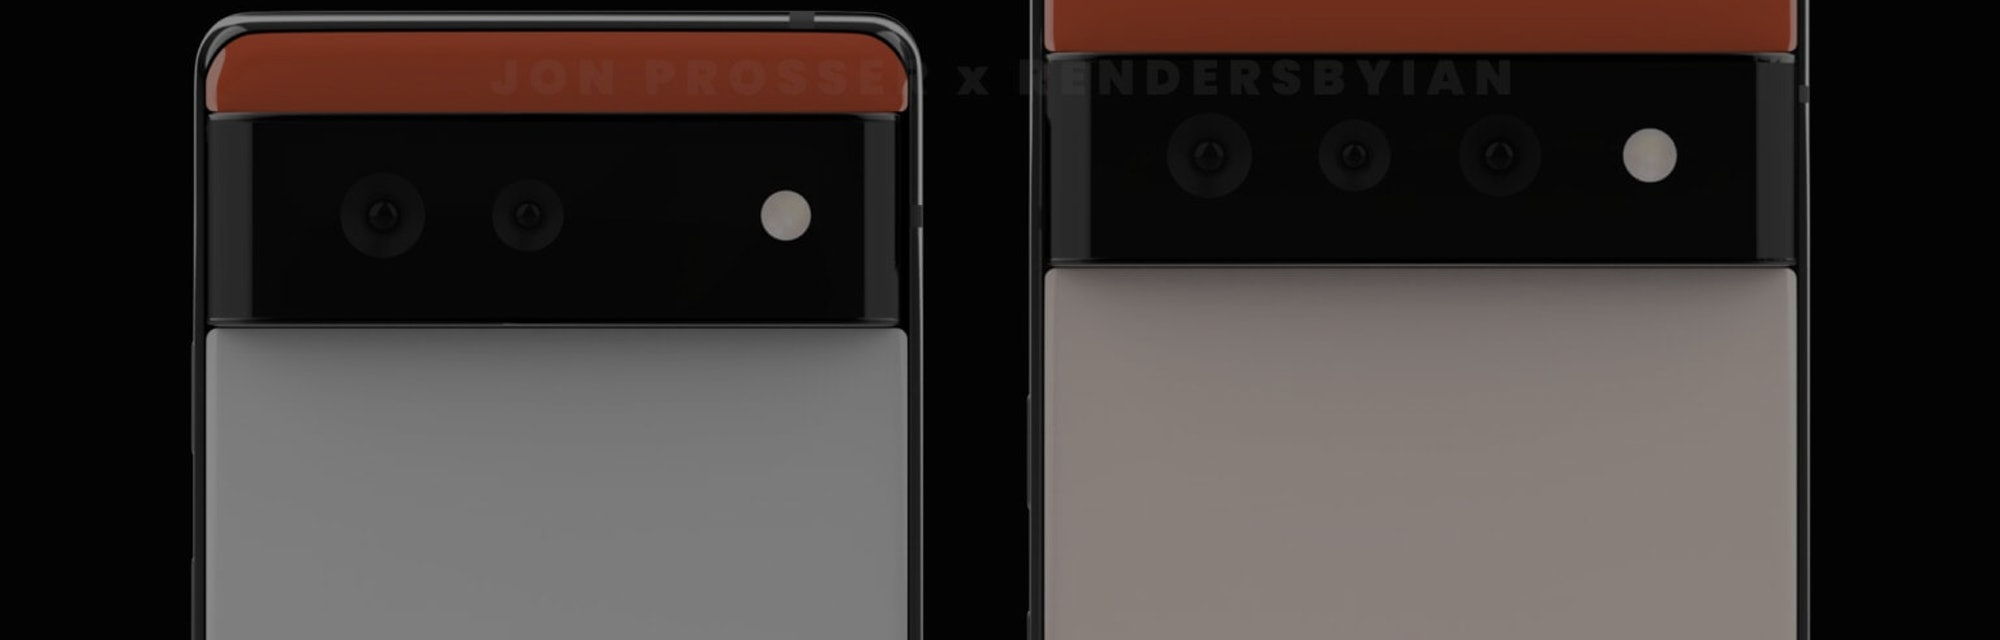 Google Pixel 6 and 6 Pro leaked images